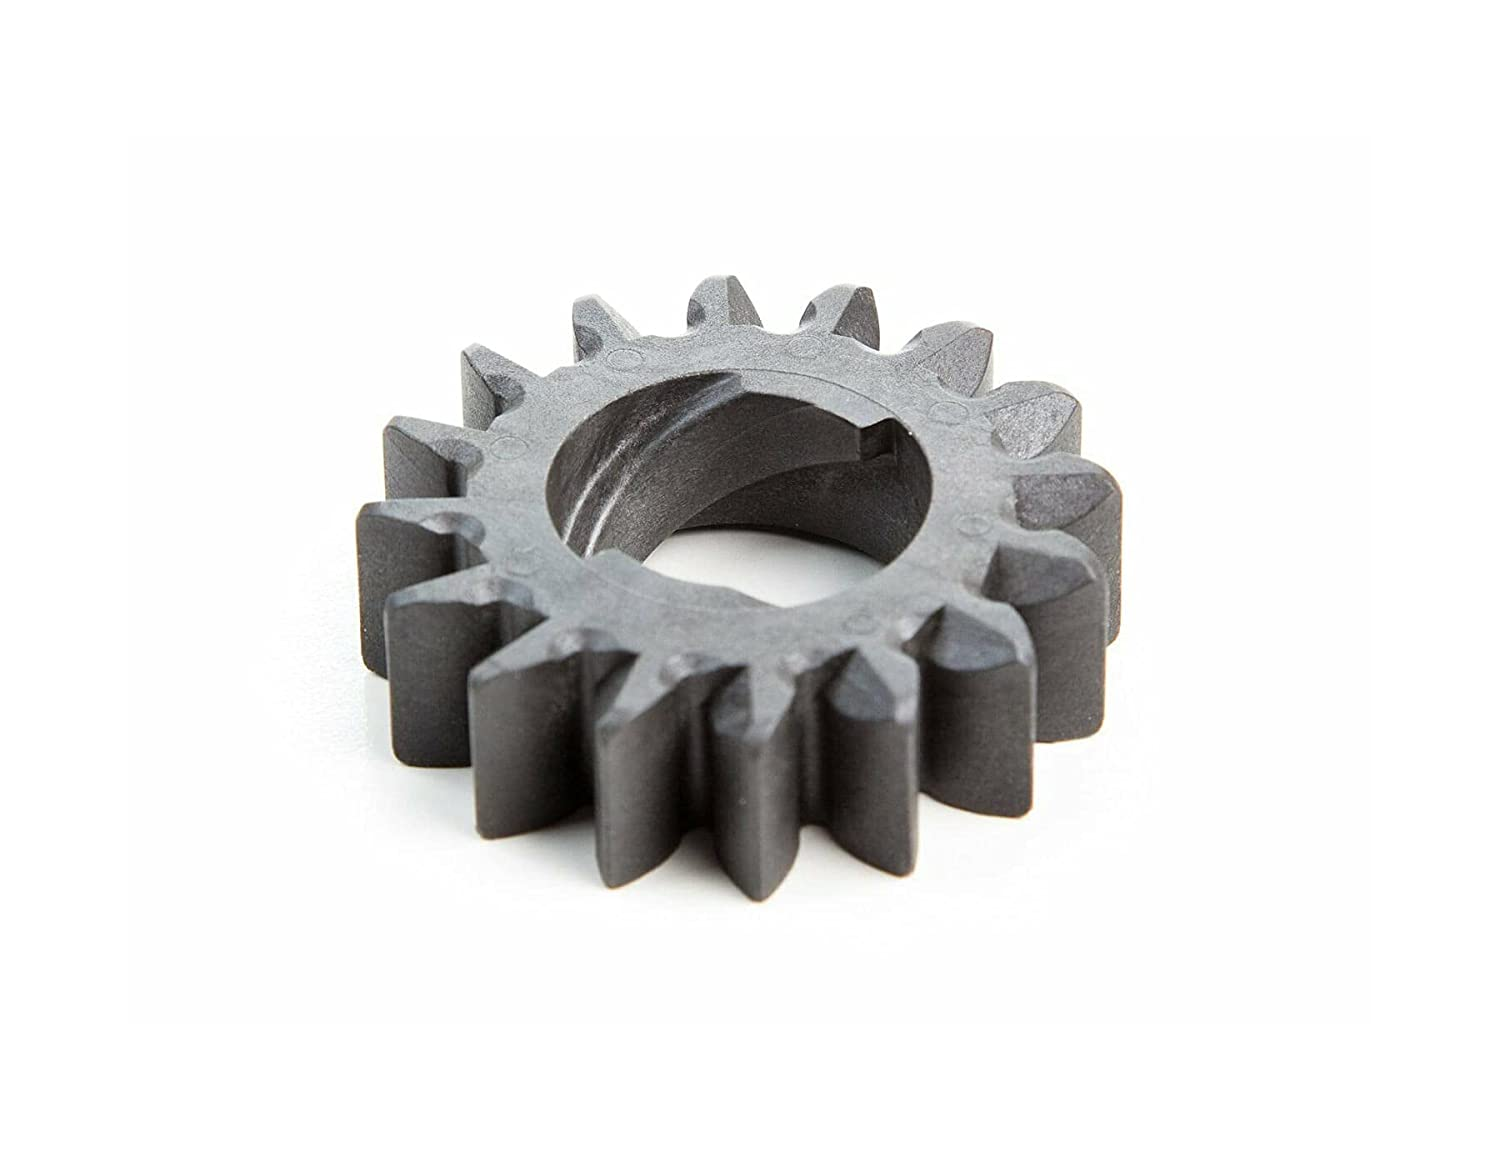 Briggsss Super sale period limited and strattonnGenuine High quality new OEM Replacement Pinion # Gear 6957